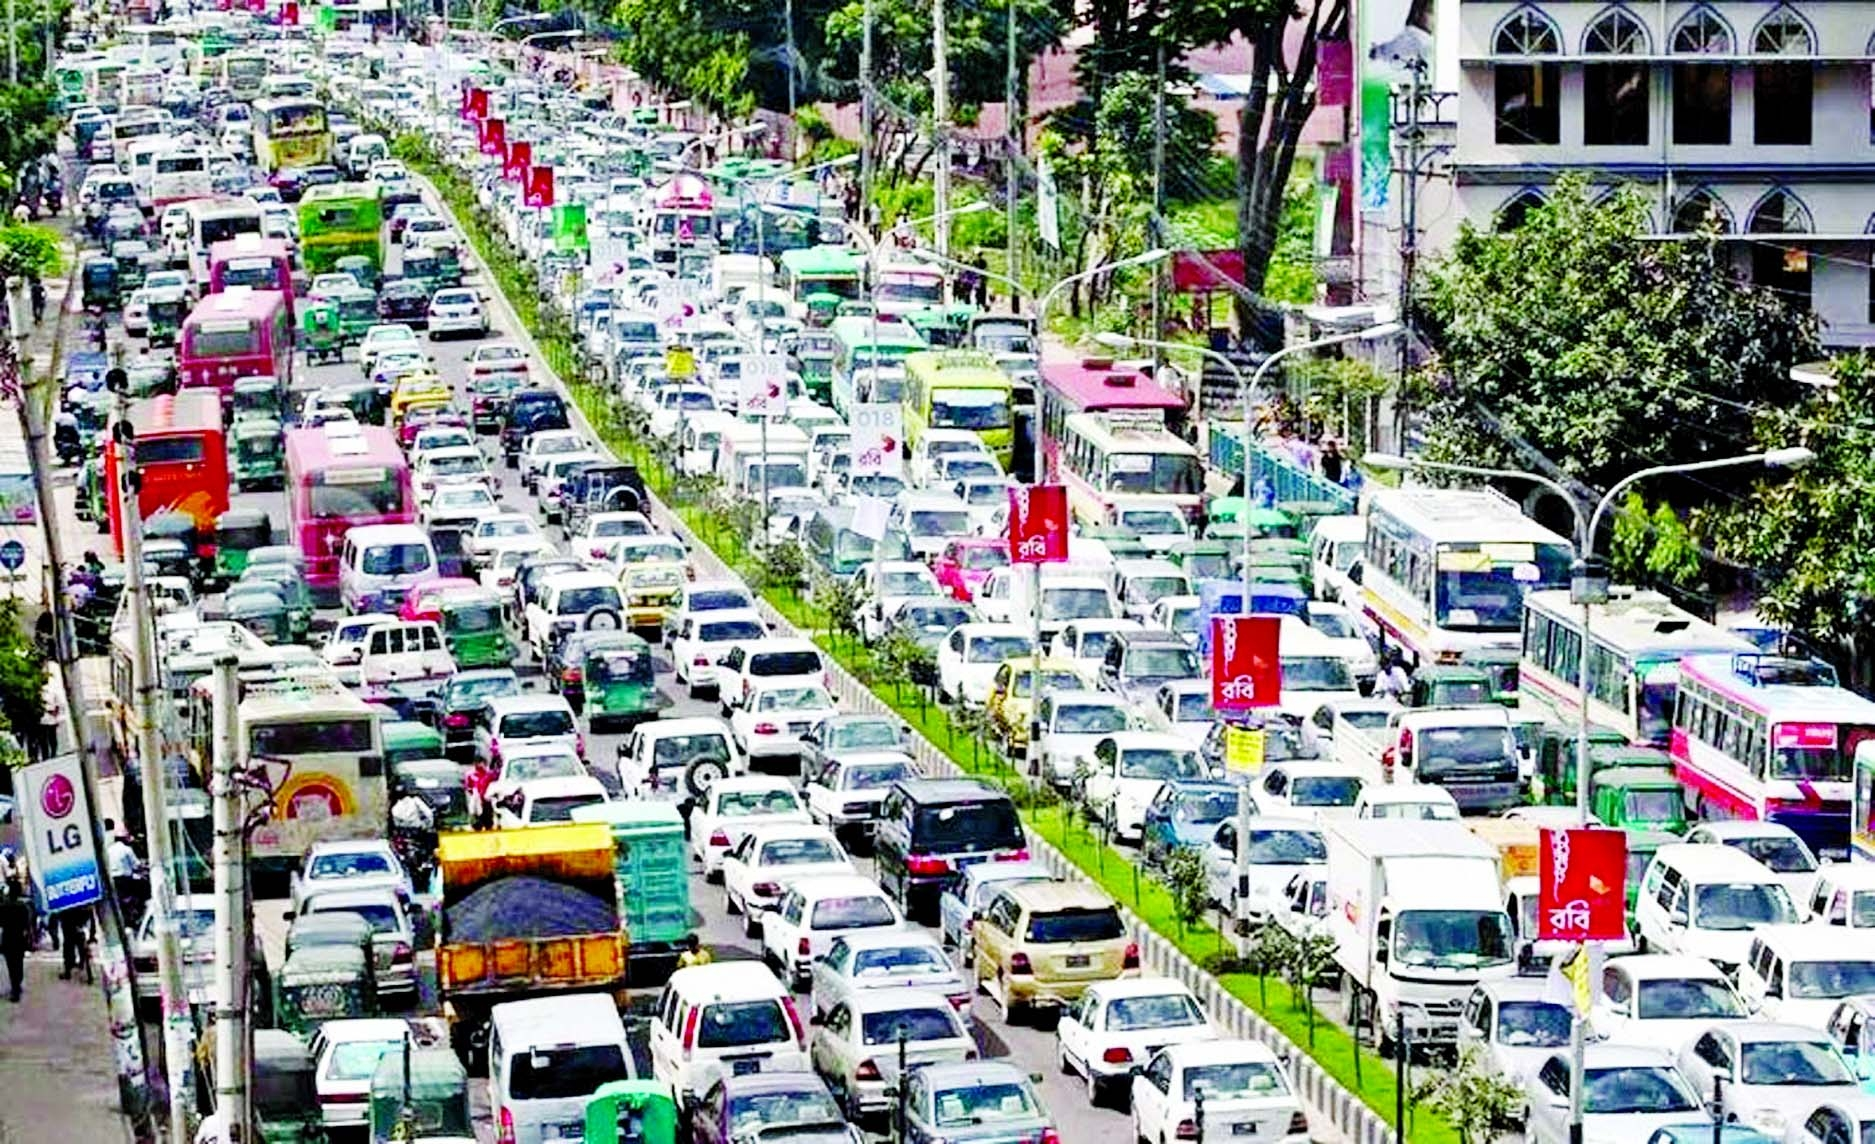 how to control the traffic jam in dhaka city 2018-08-11 dhakacity, the capital city of bangladesh and an area that is experiencing rapid population expansion and traffic congestion for a long time.